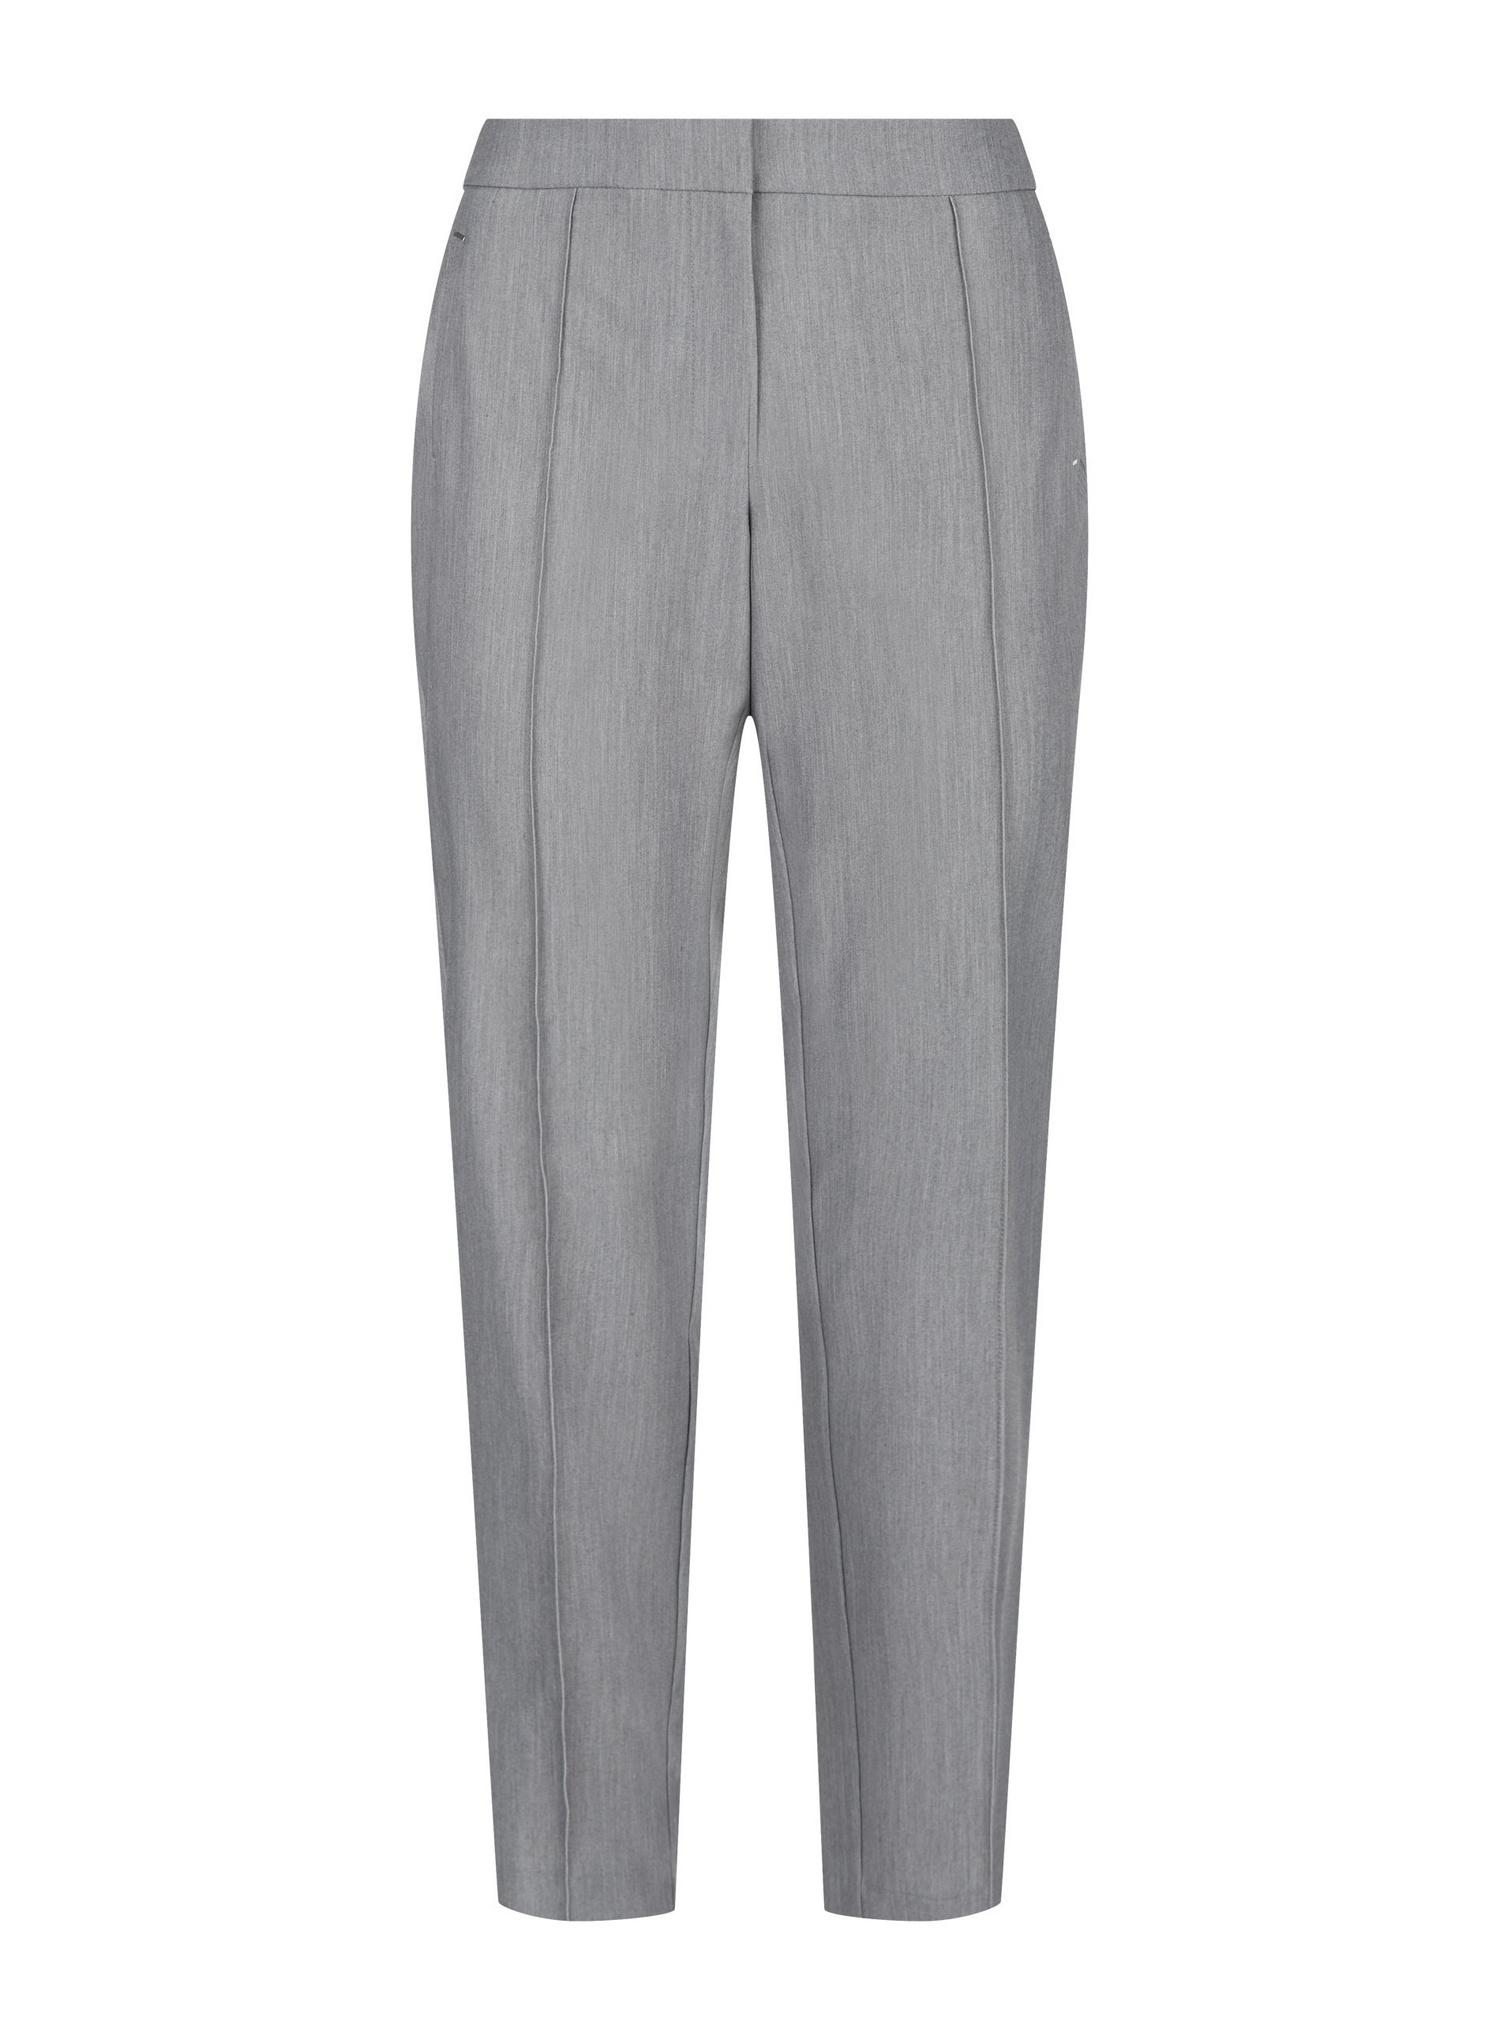 131 Tall Grey Tailored Trousers image number 4